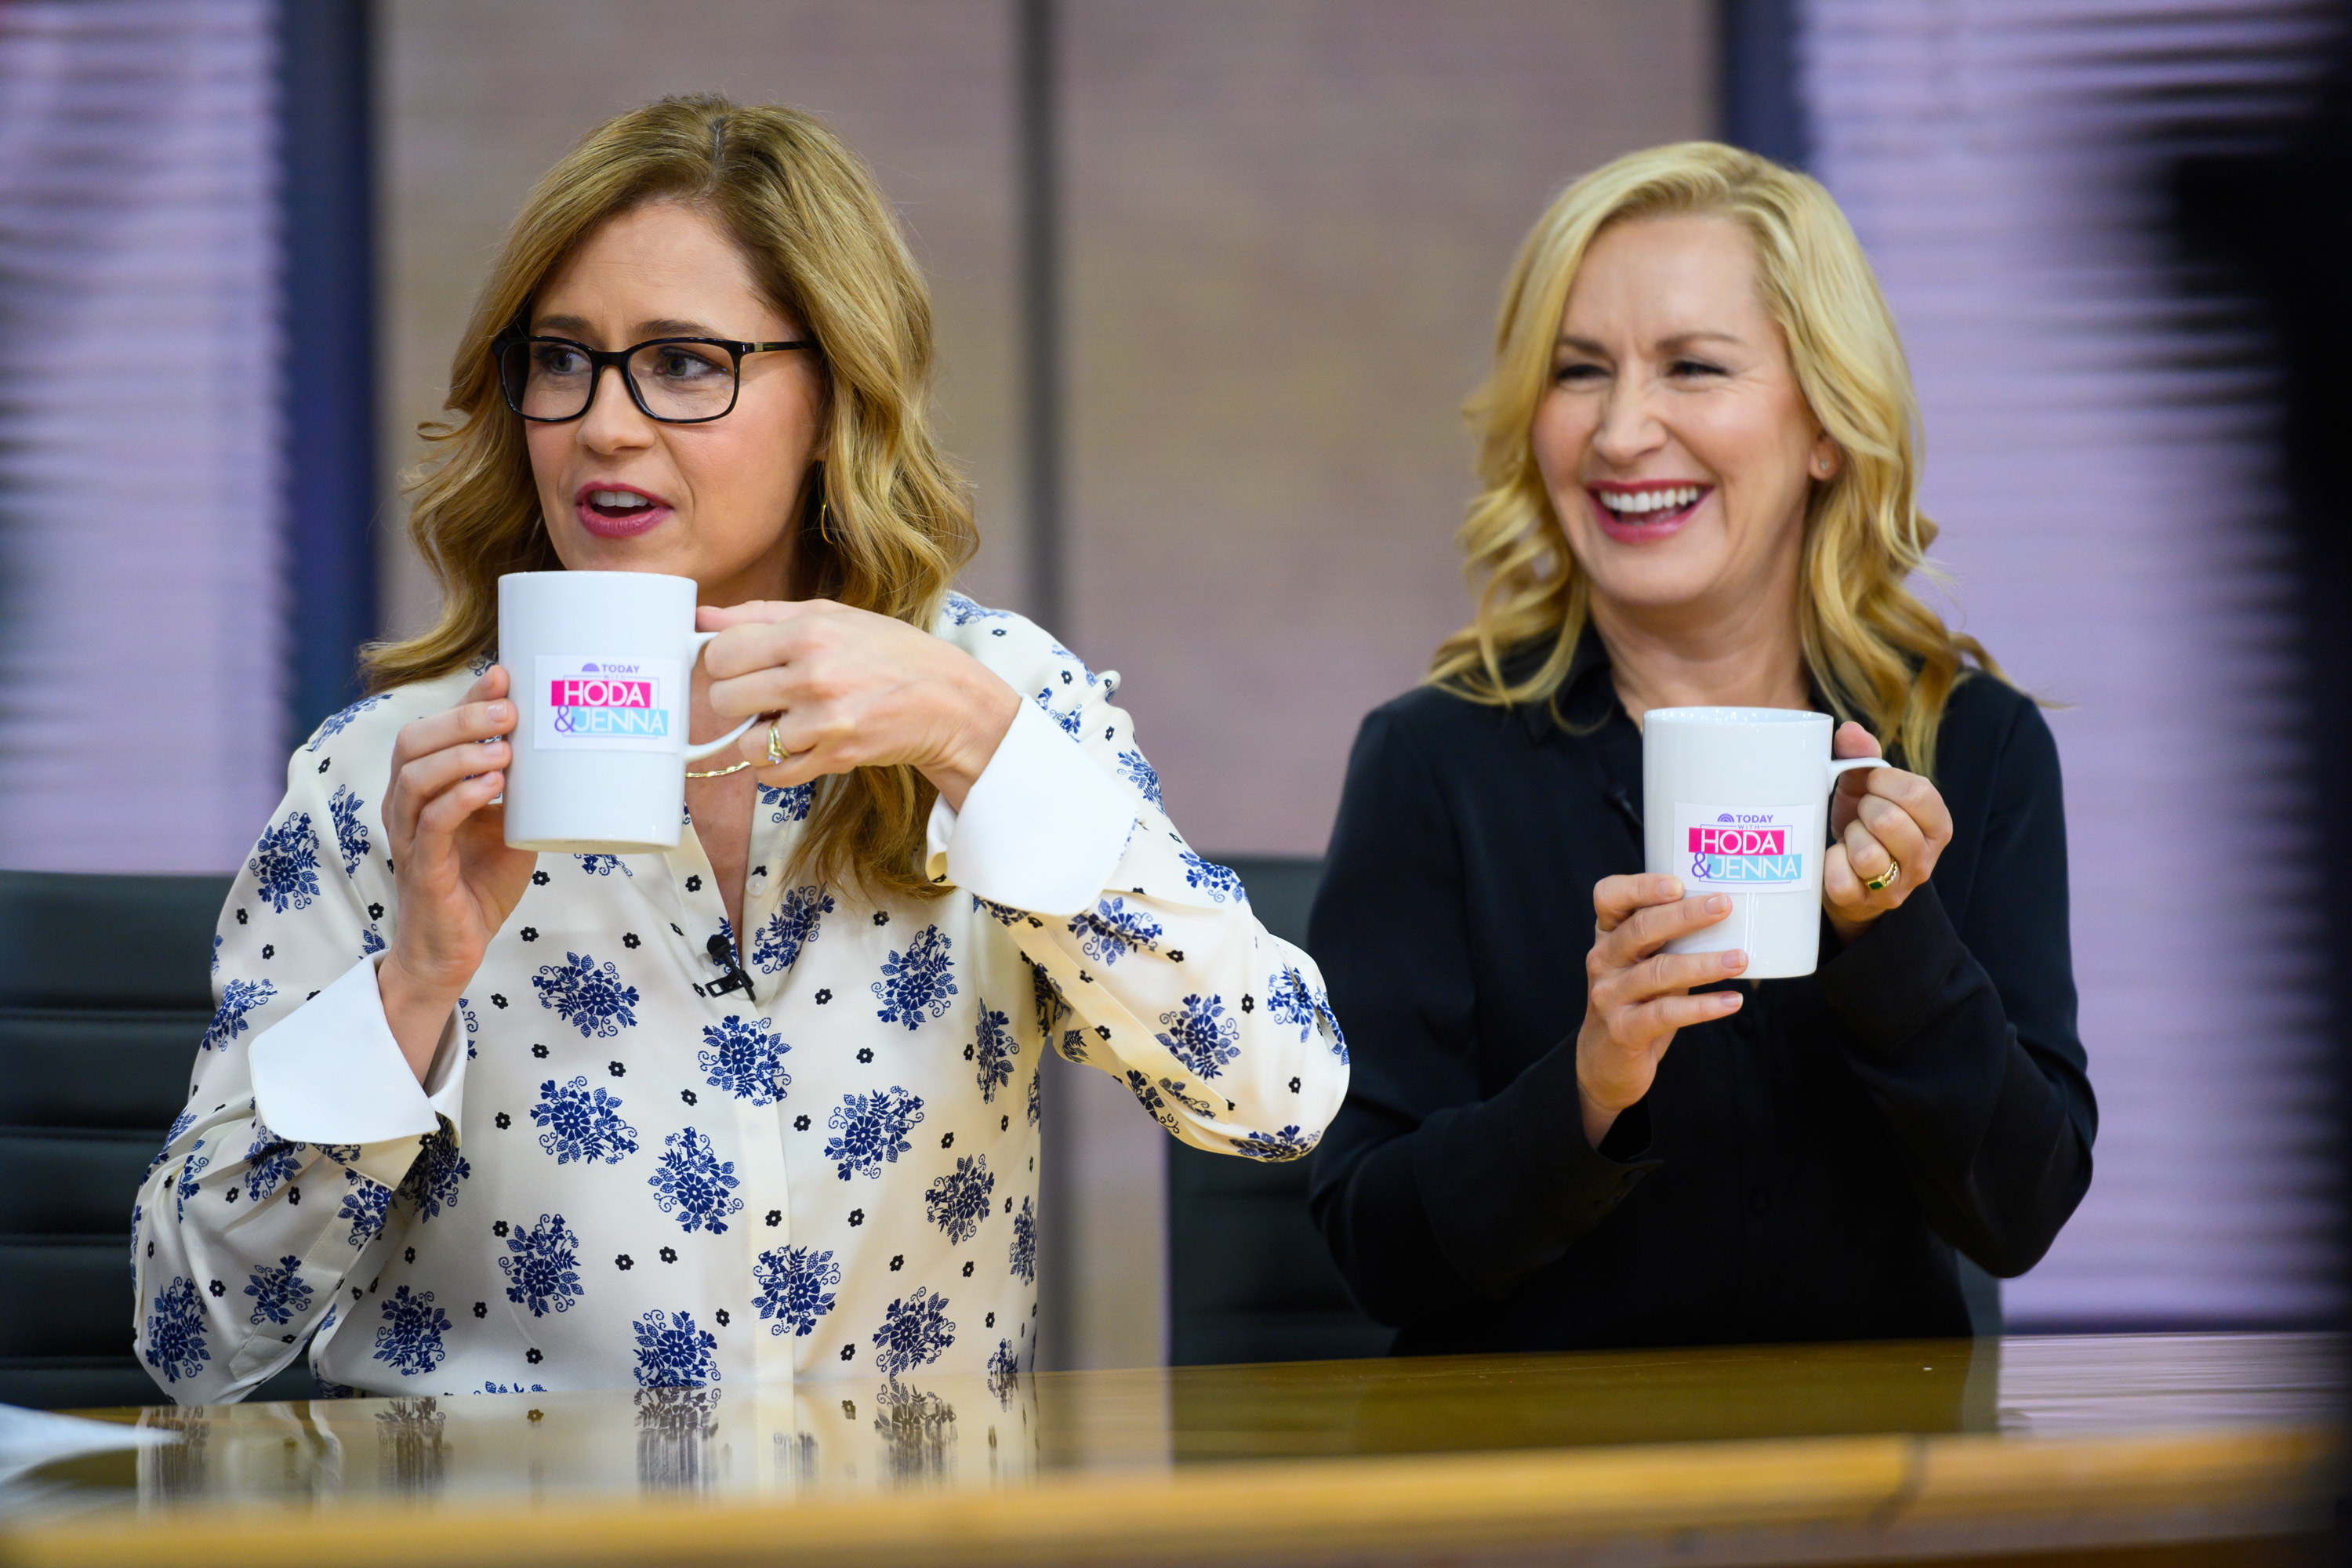 Jenna Fischer and Angela Kinsey on the TODAY Show